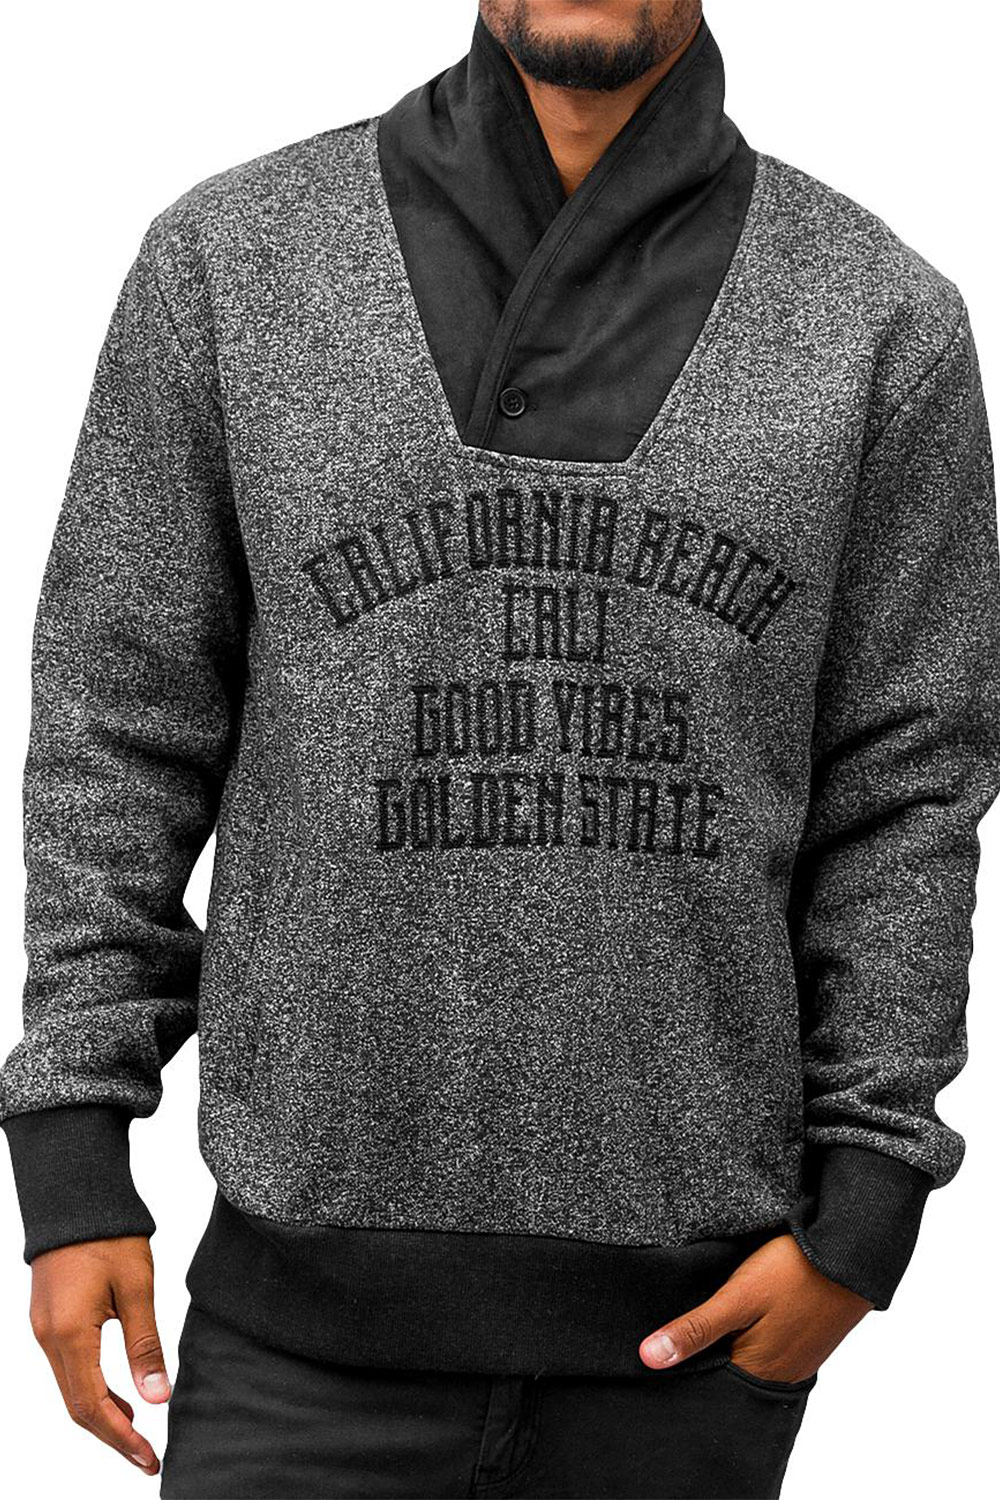 JUST RHYSE California Beach Sweatshirt Black Melange auf oboy.de